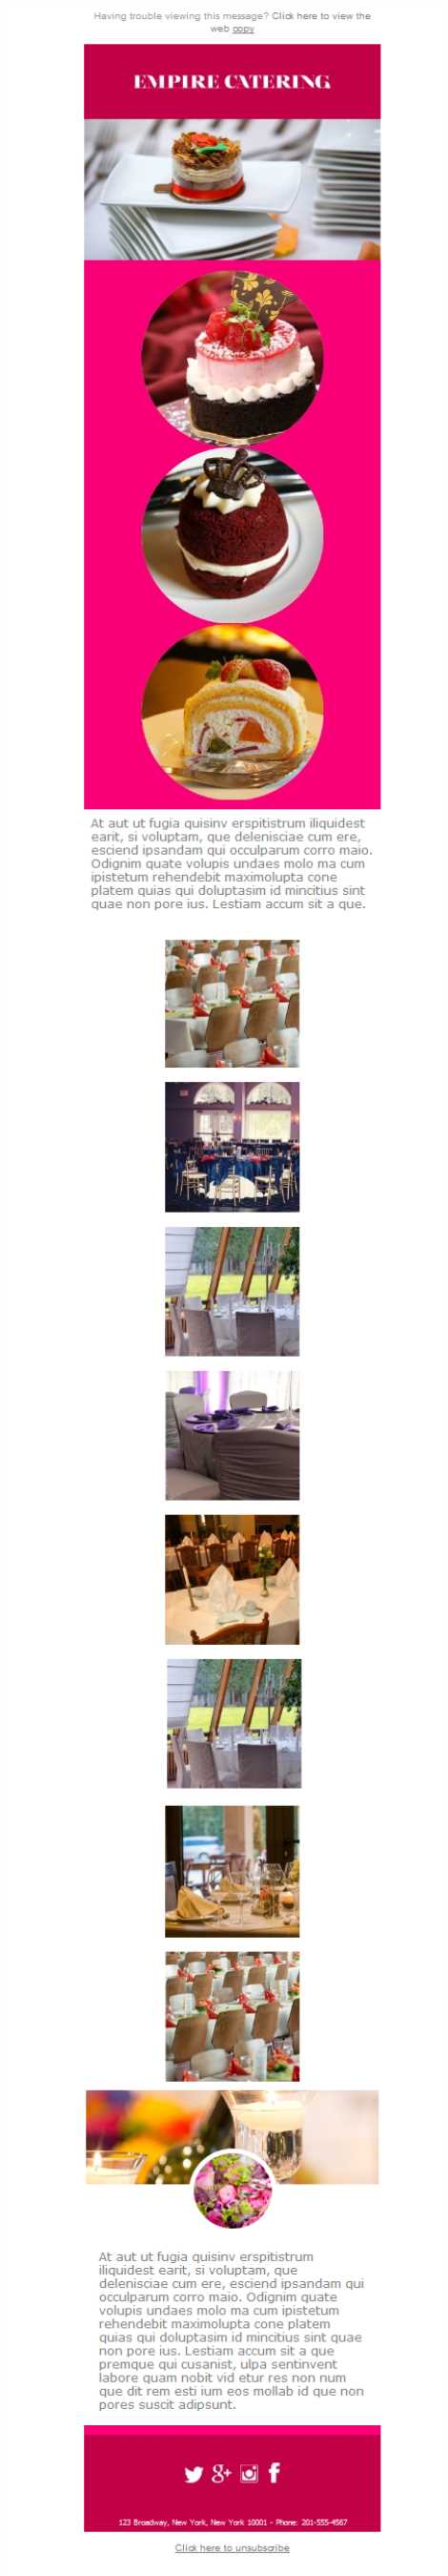 Templates Emailing Catering Empire Sarbacane